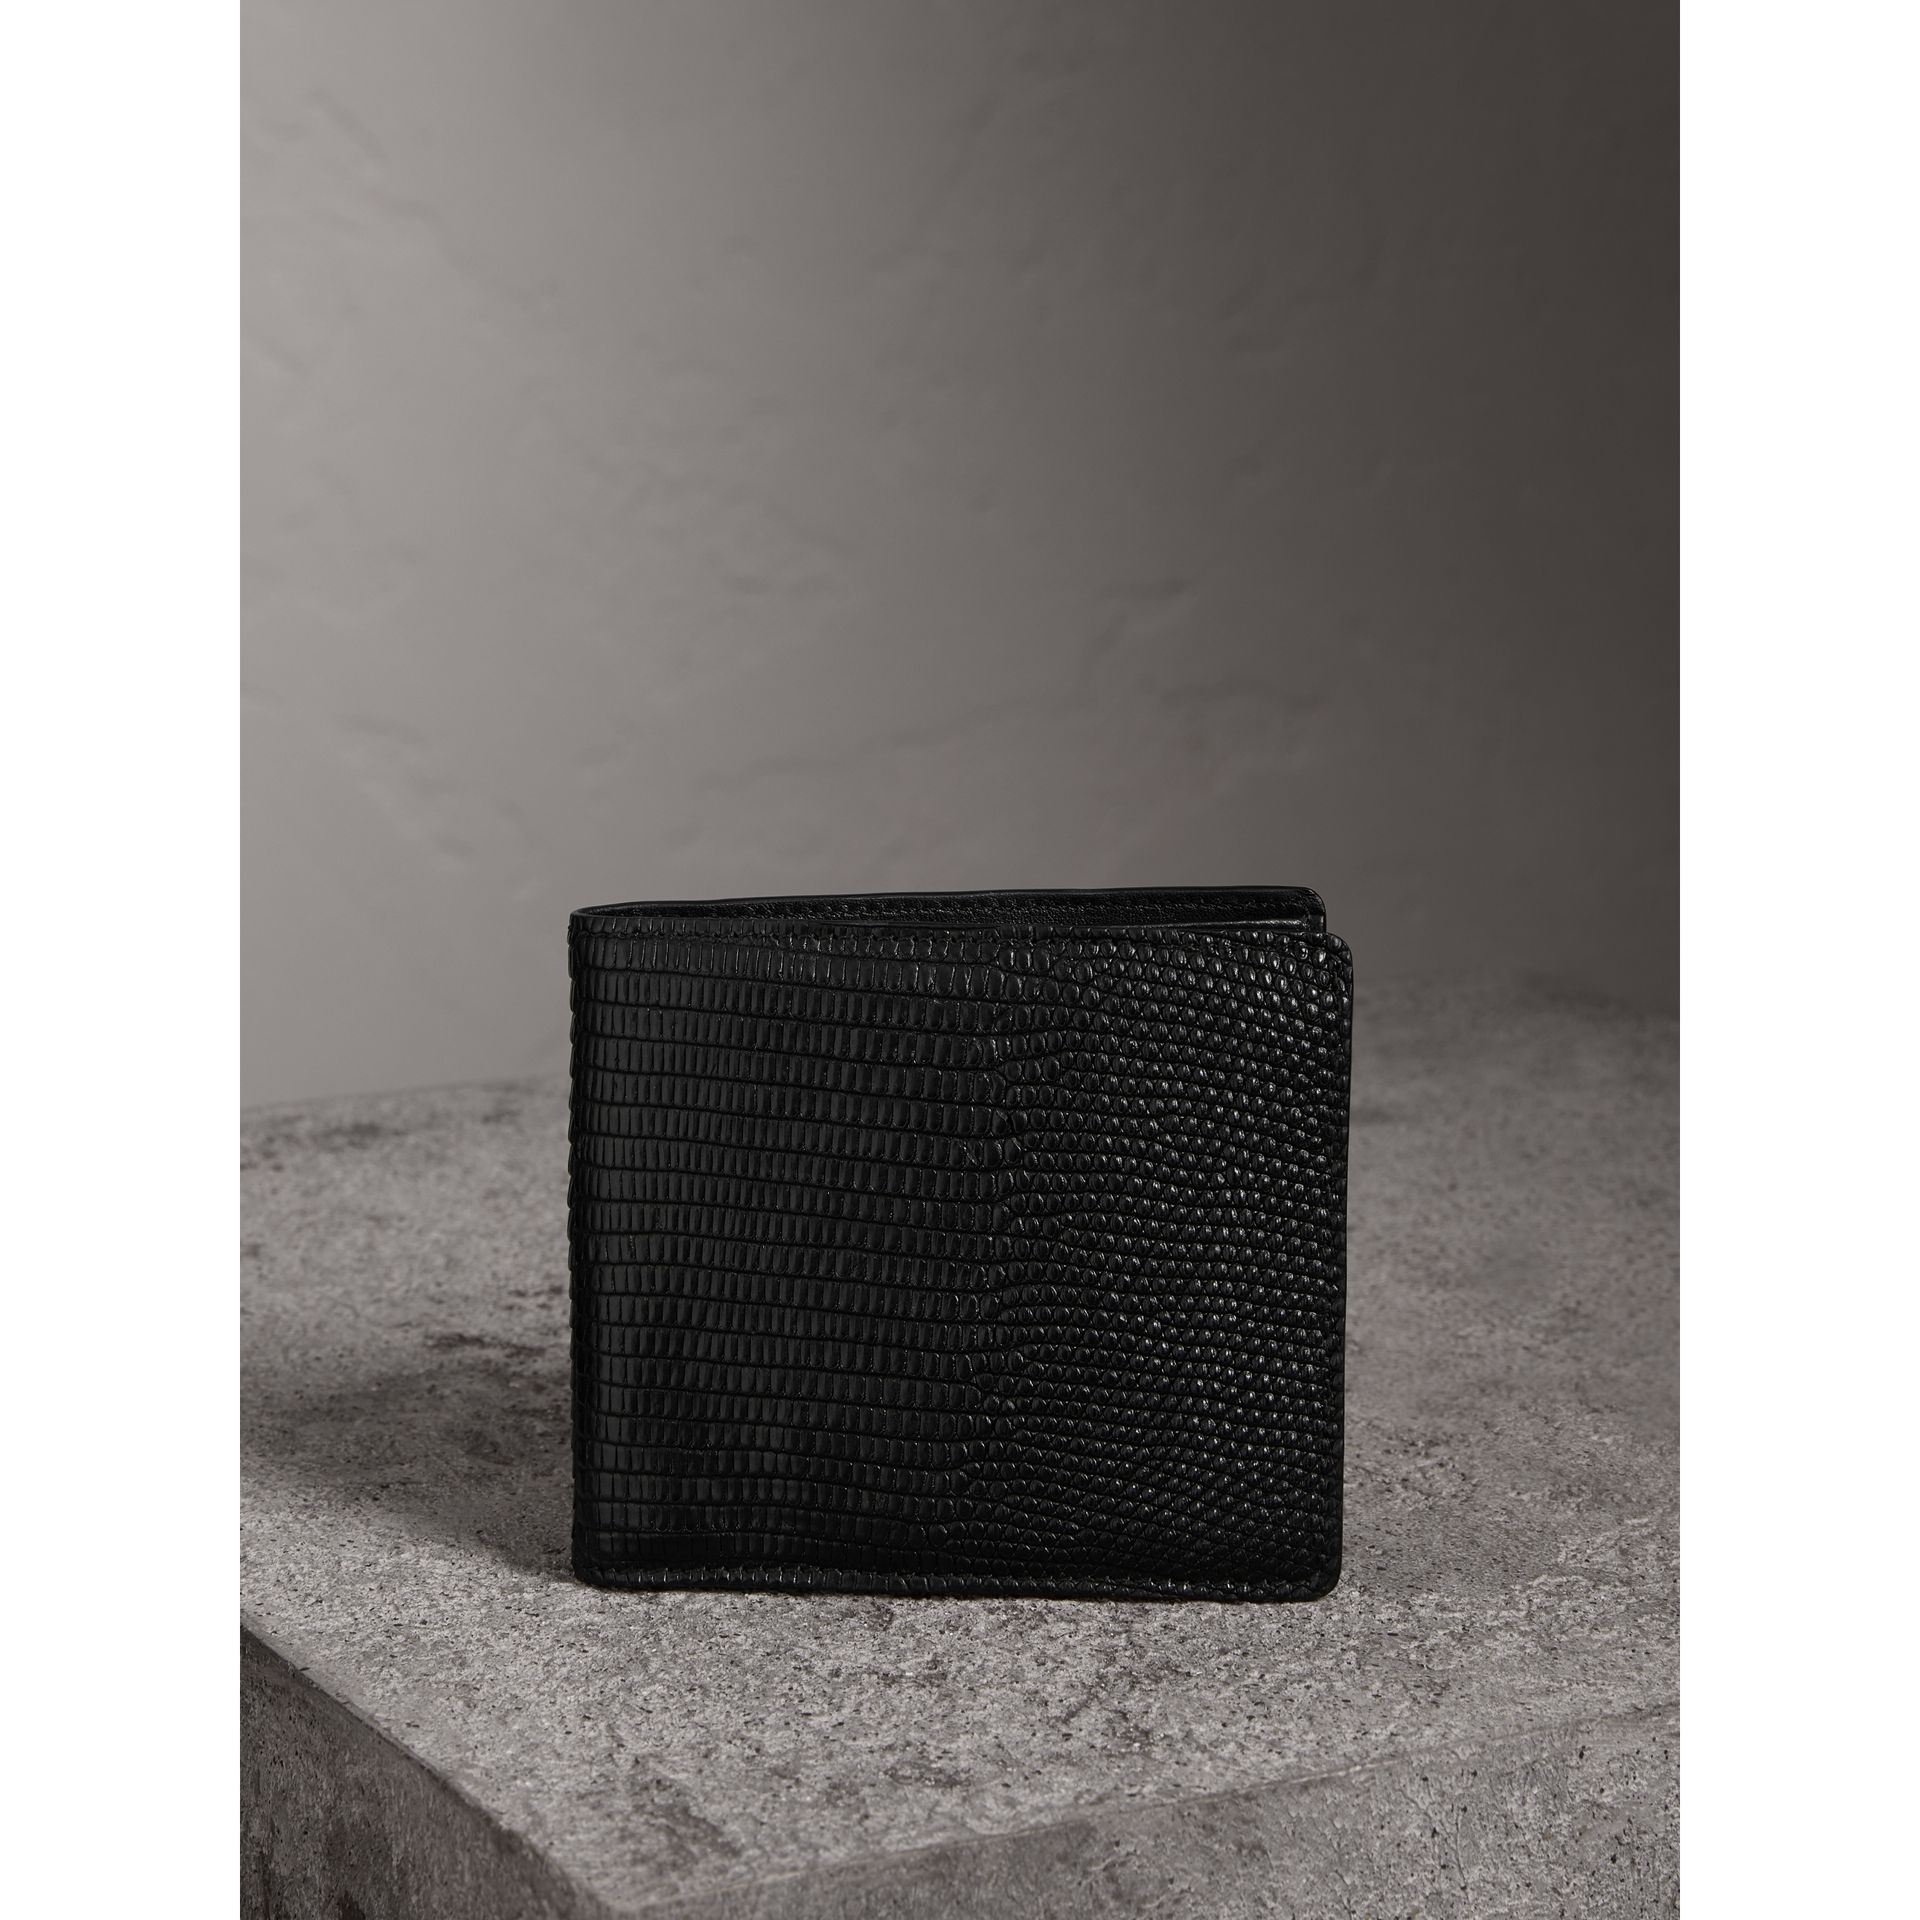 Lizard International Bifold Wallet in Black - Men | Burberry Australia - gallery image 4